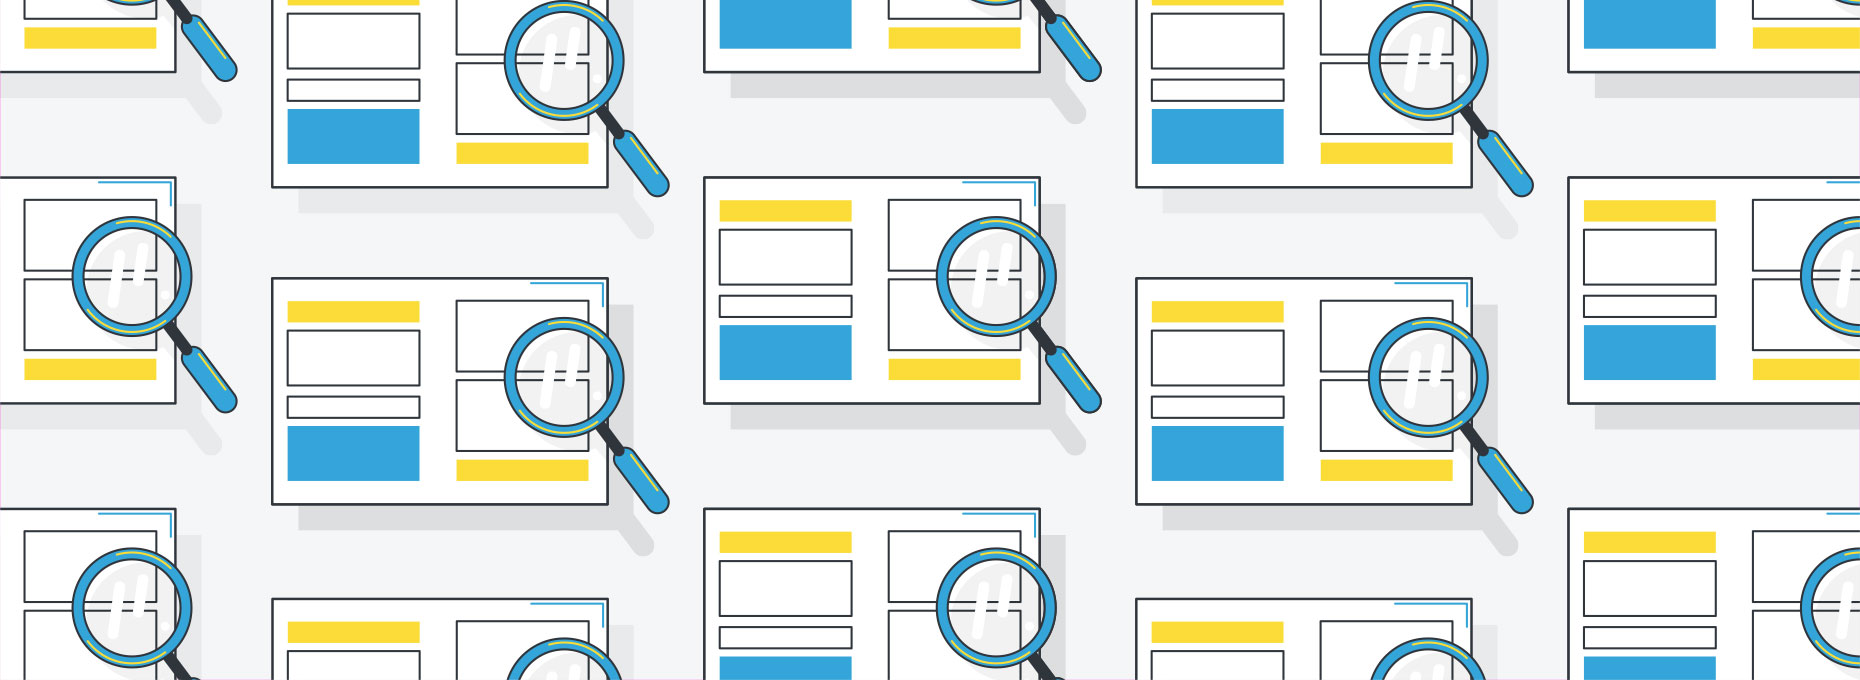 Case study graphic image with repeating icons